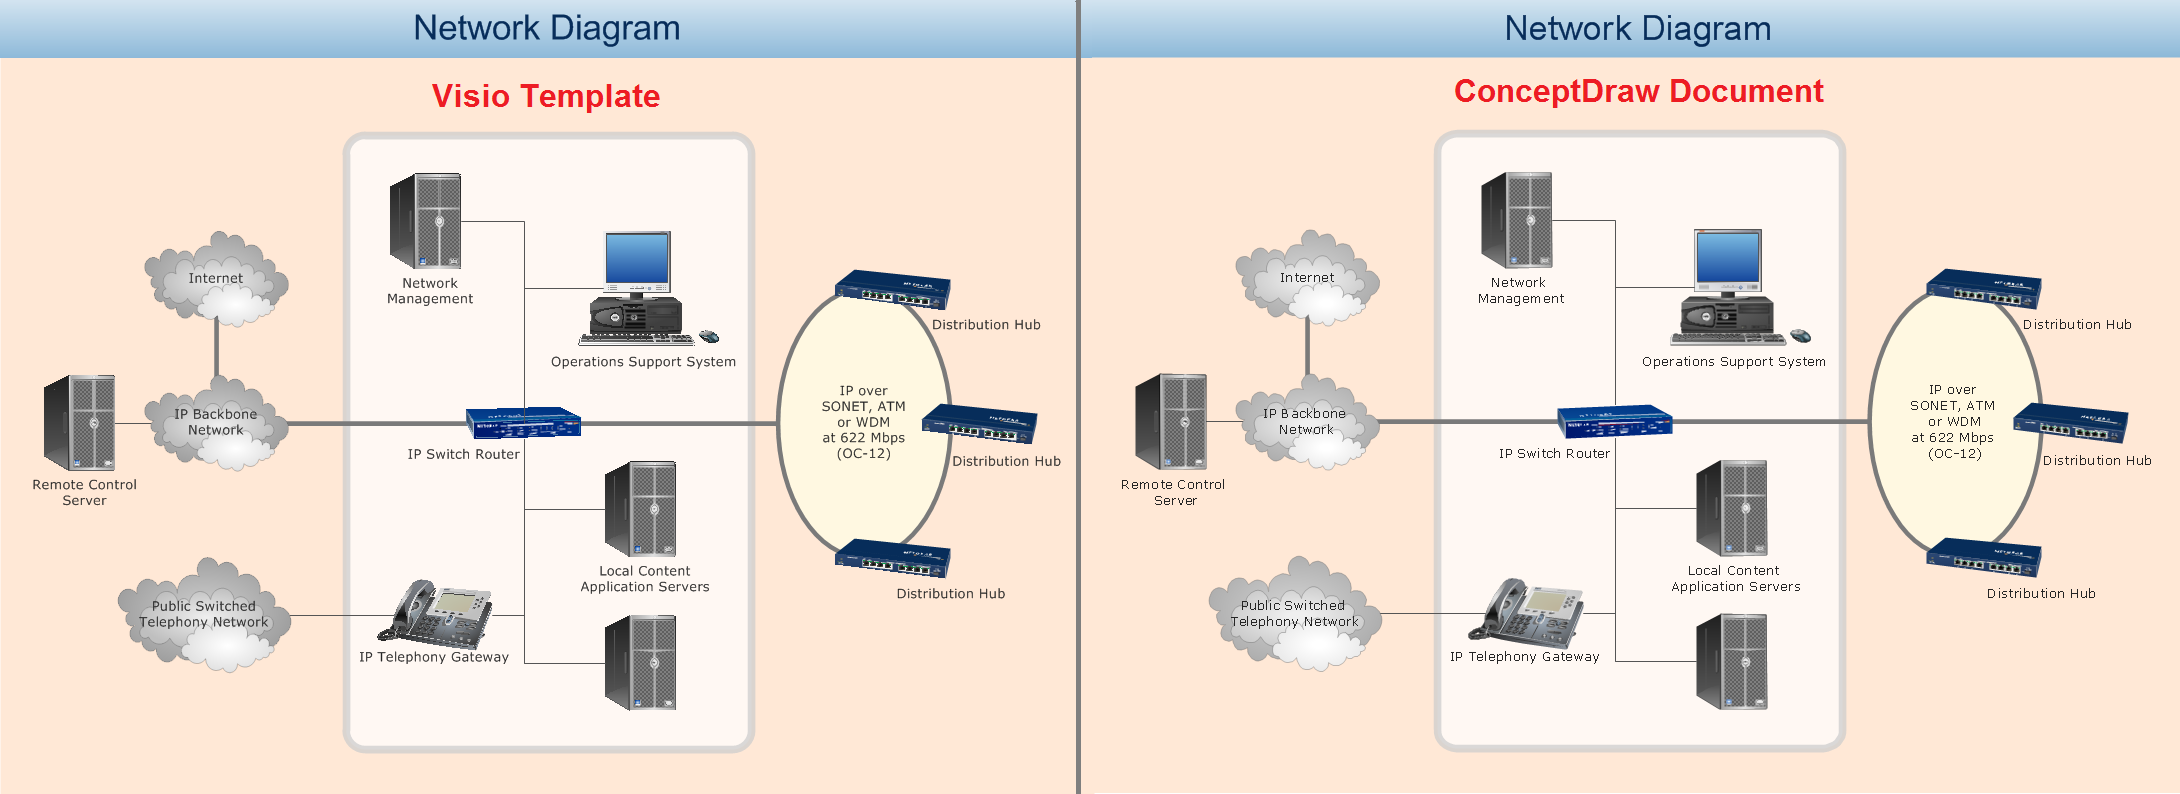 ConceptDraw as an alternative to MS Visio for MAC and PC - Network-Diagram